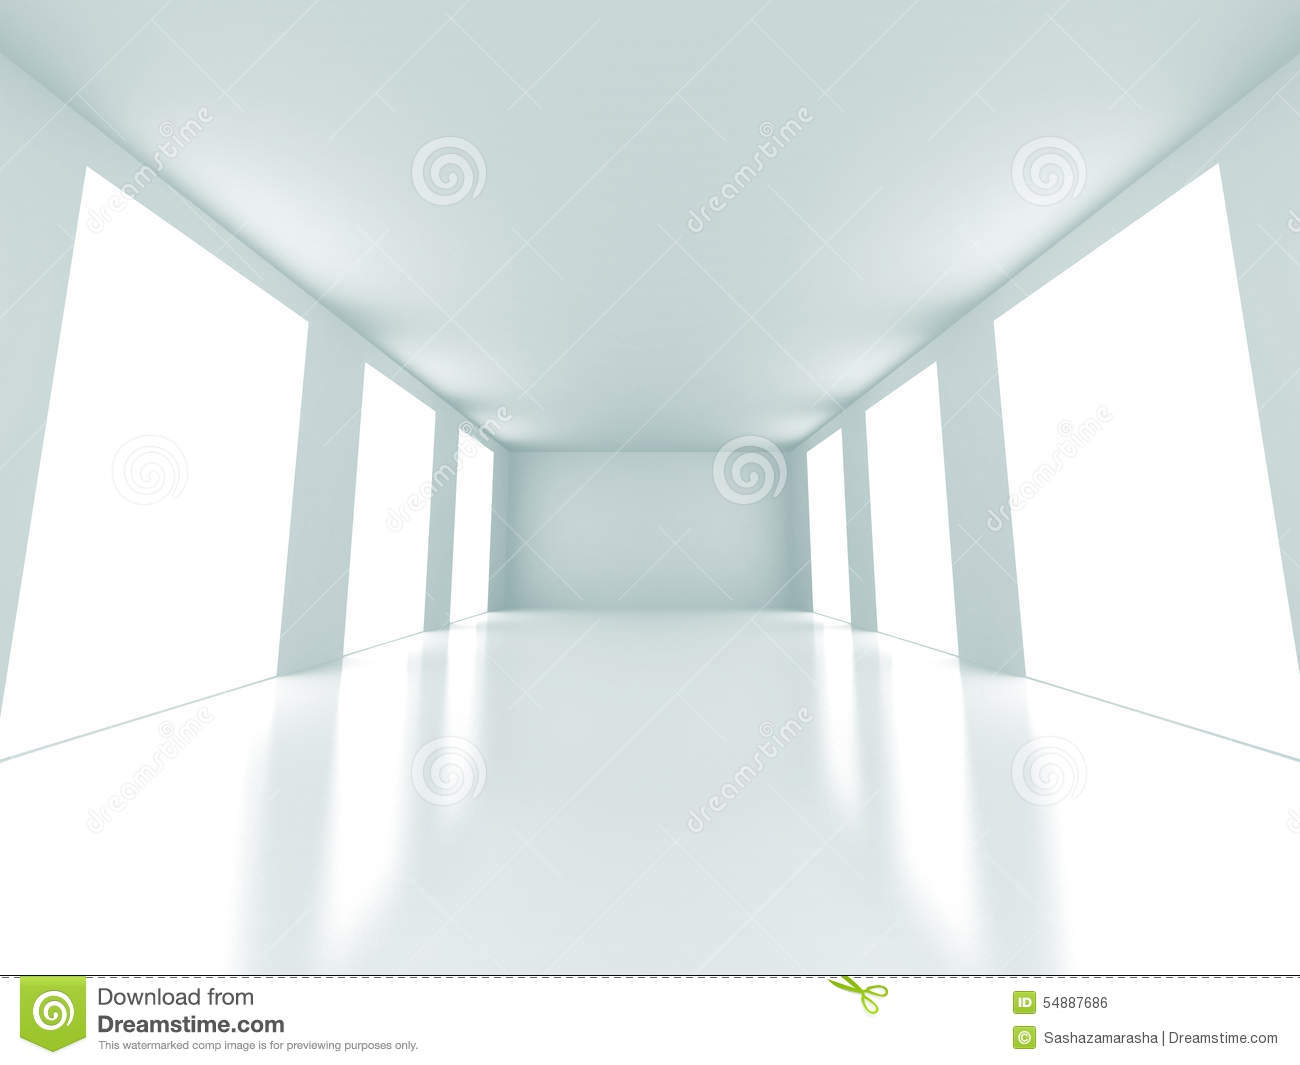 empty bright light room interior architecture background